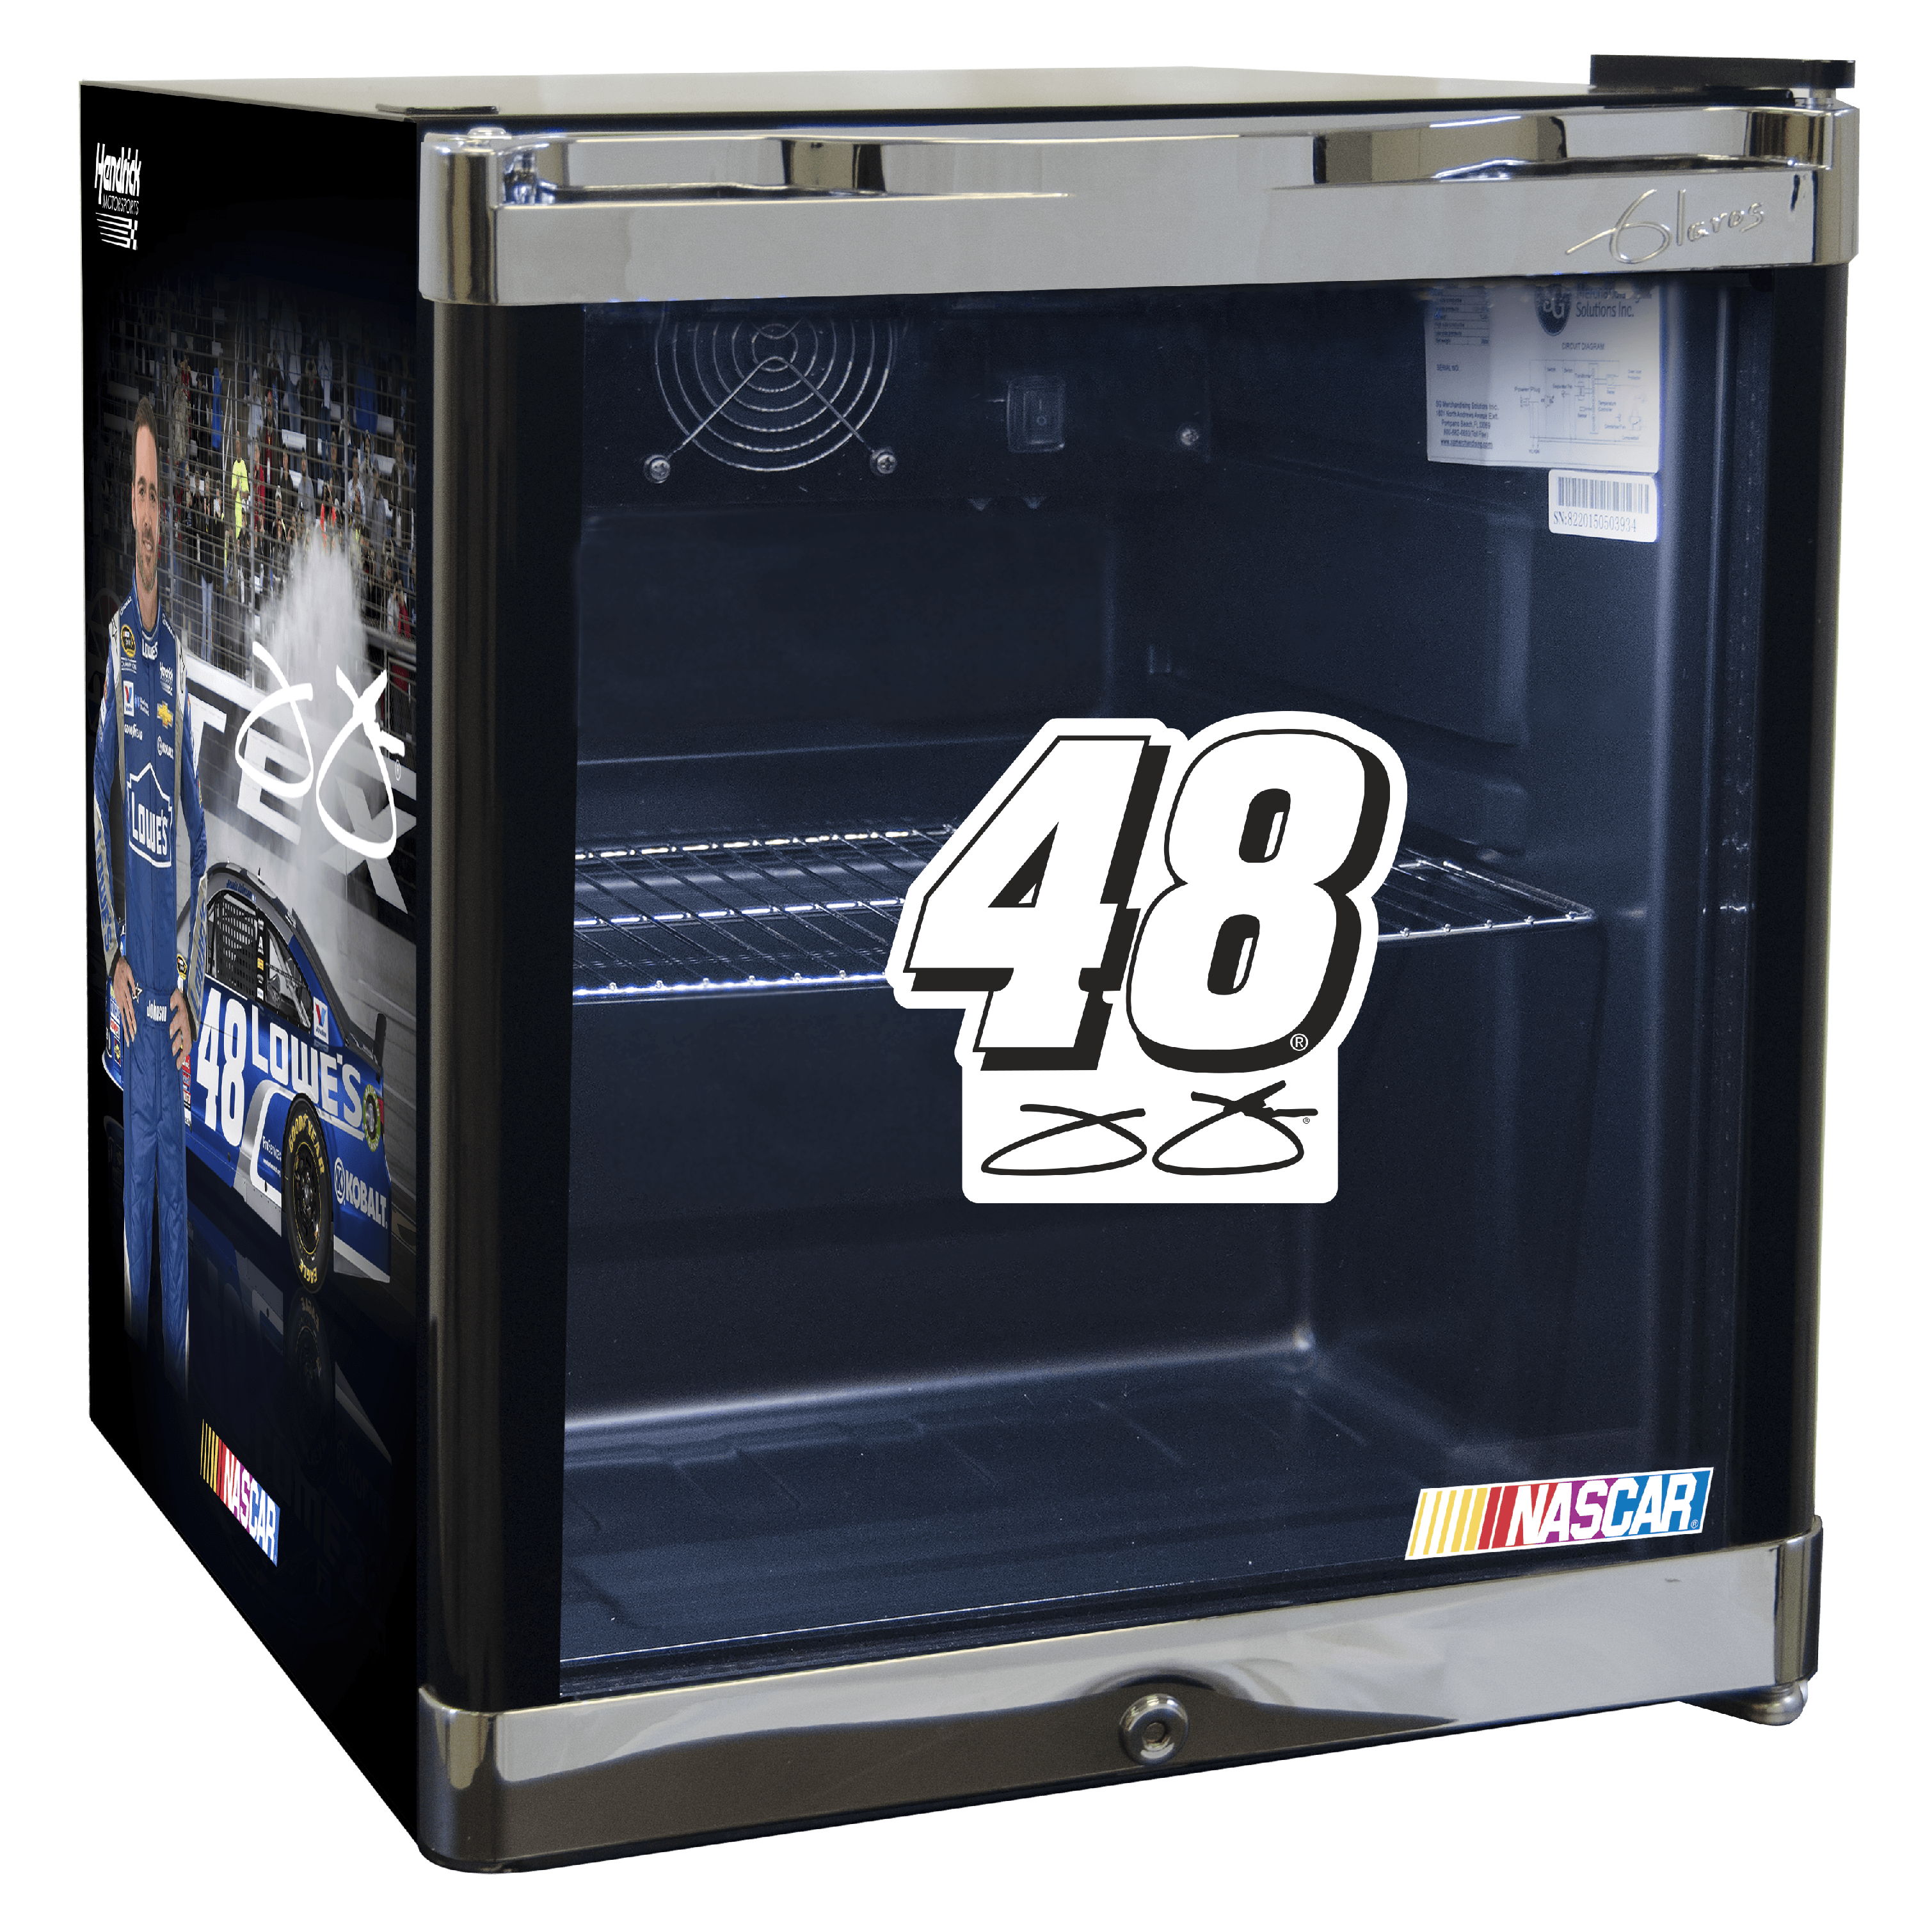 NASCAR Refrigerated Beverage Center 1.8 cu ft - Jimmie Johnson